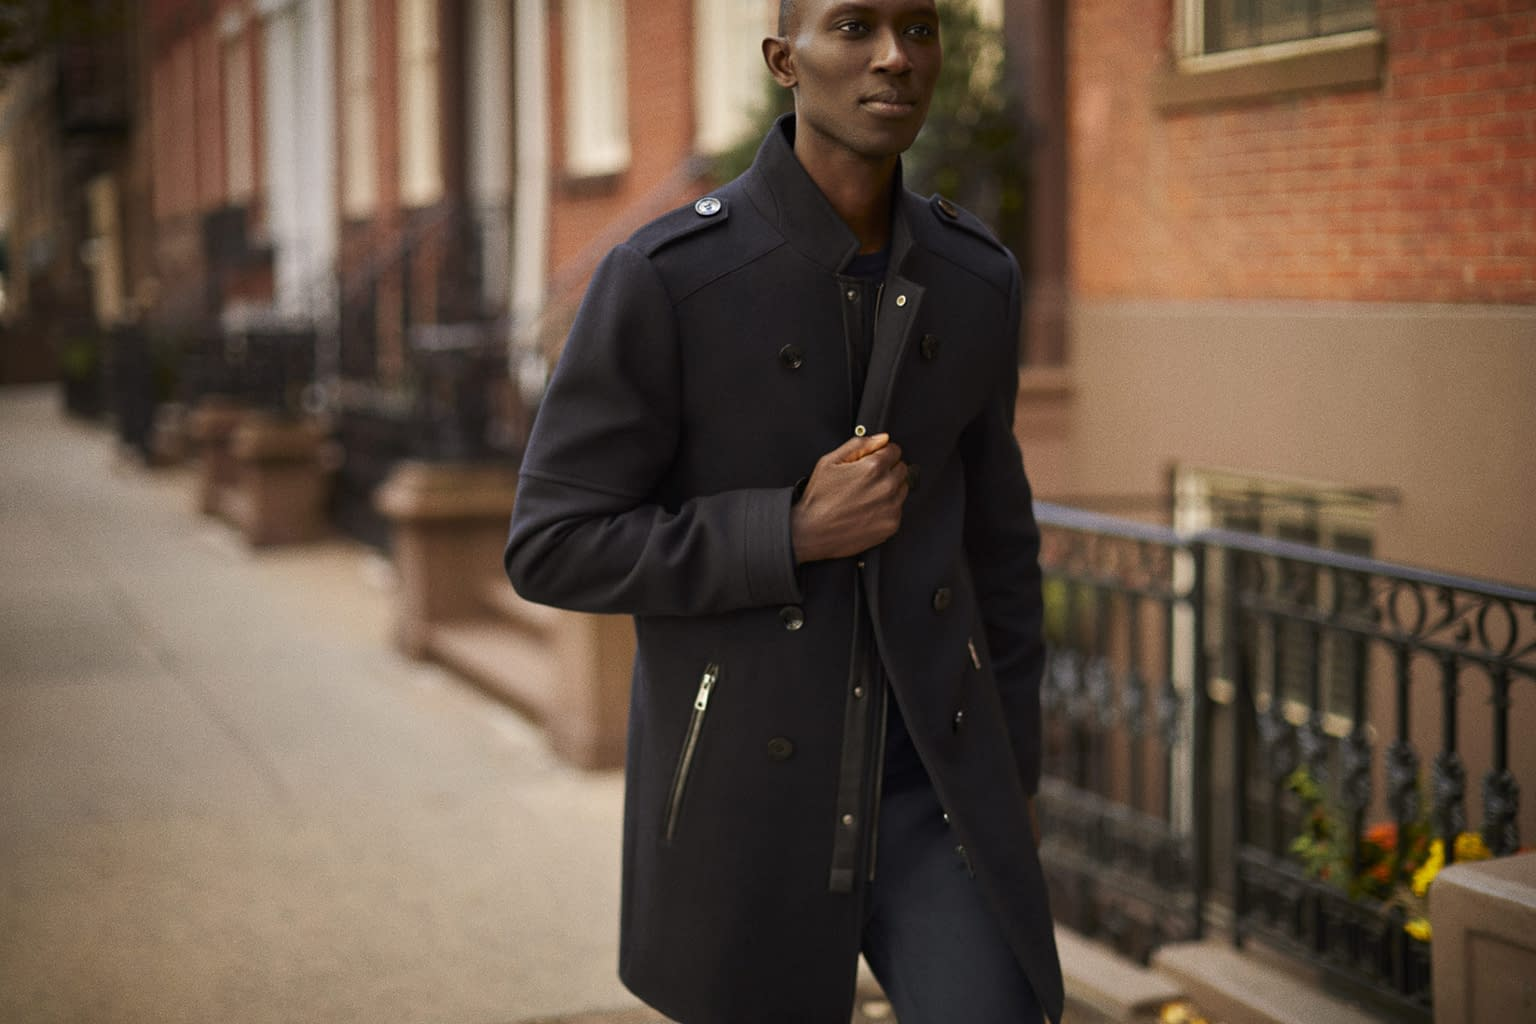 A NEW YORKER - LEFTIES - WITH ARMANDO CABRAL PHOTO BY ENRIC GALCERAN - 09